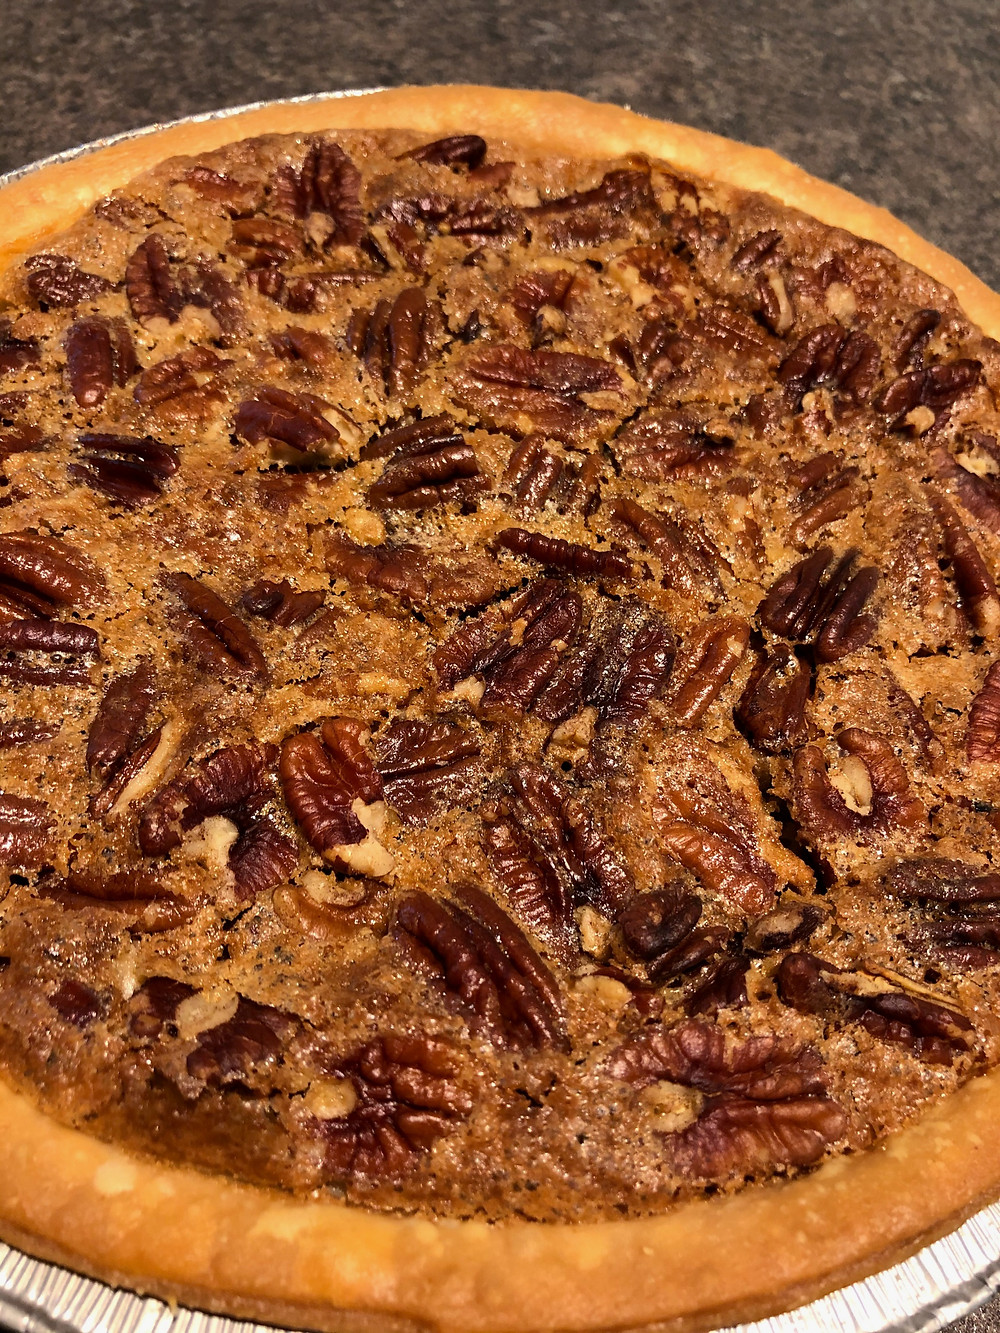 A golden pecan pie sits in a silver pan, ready to cut and serve.